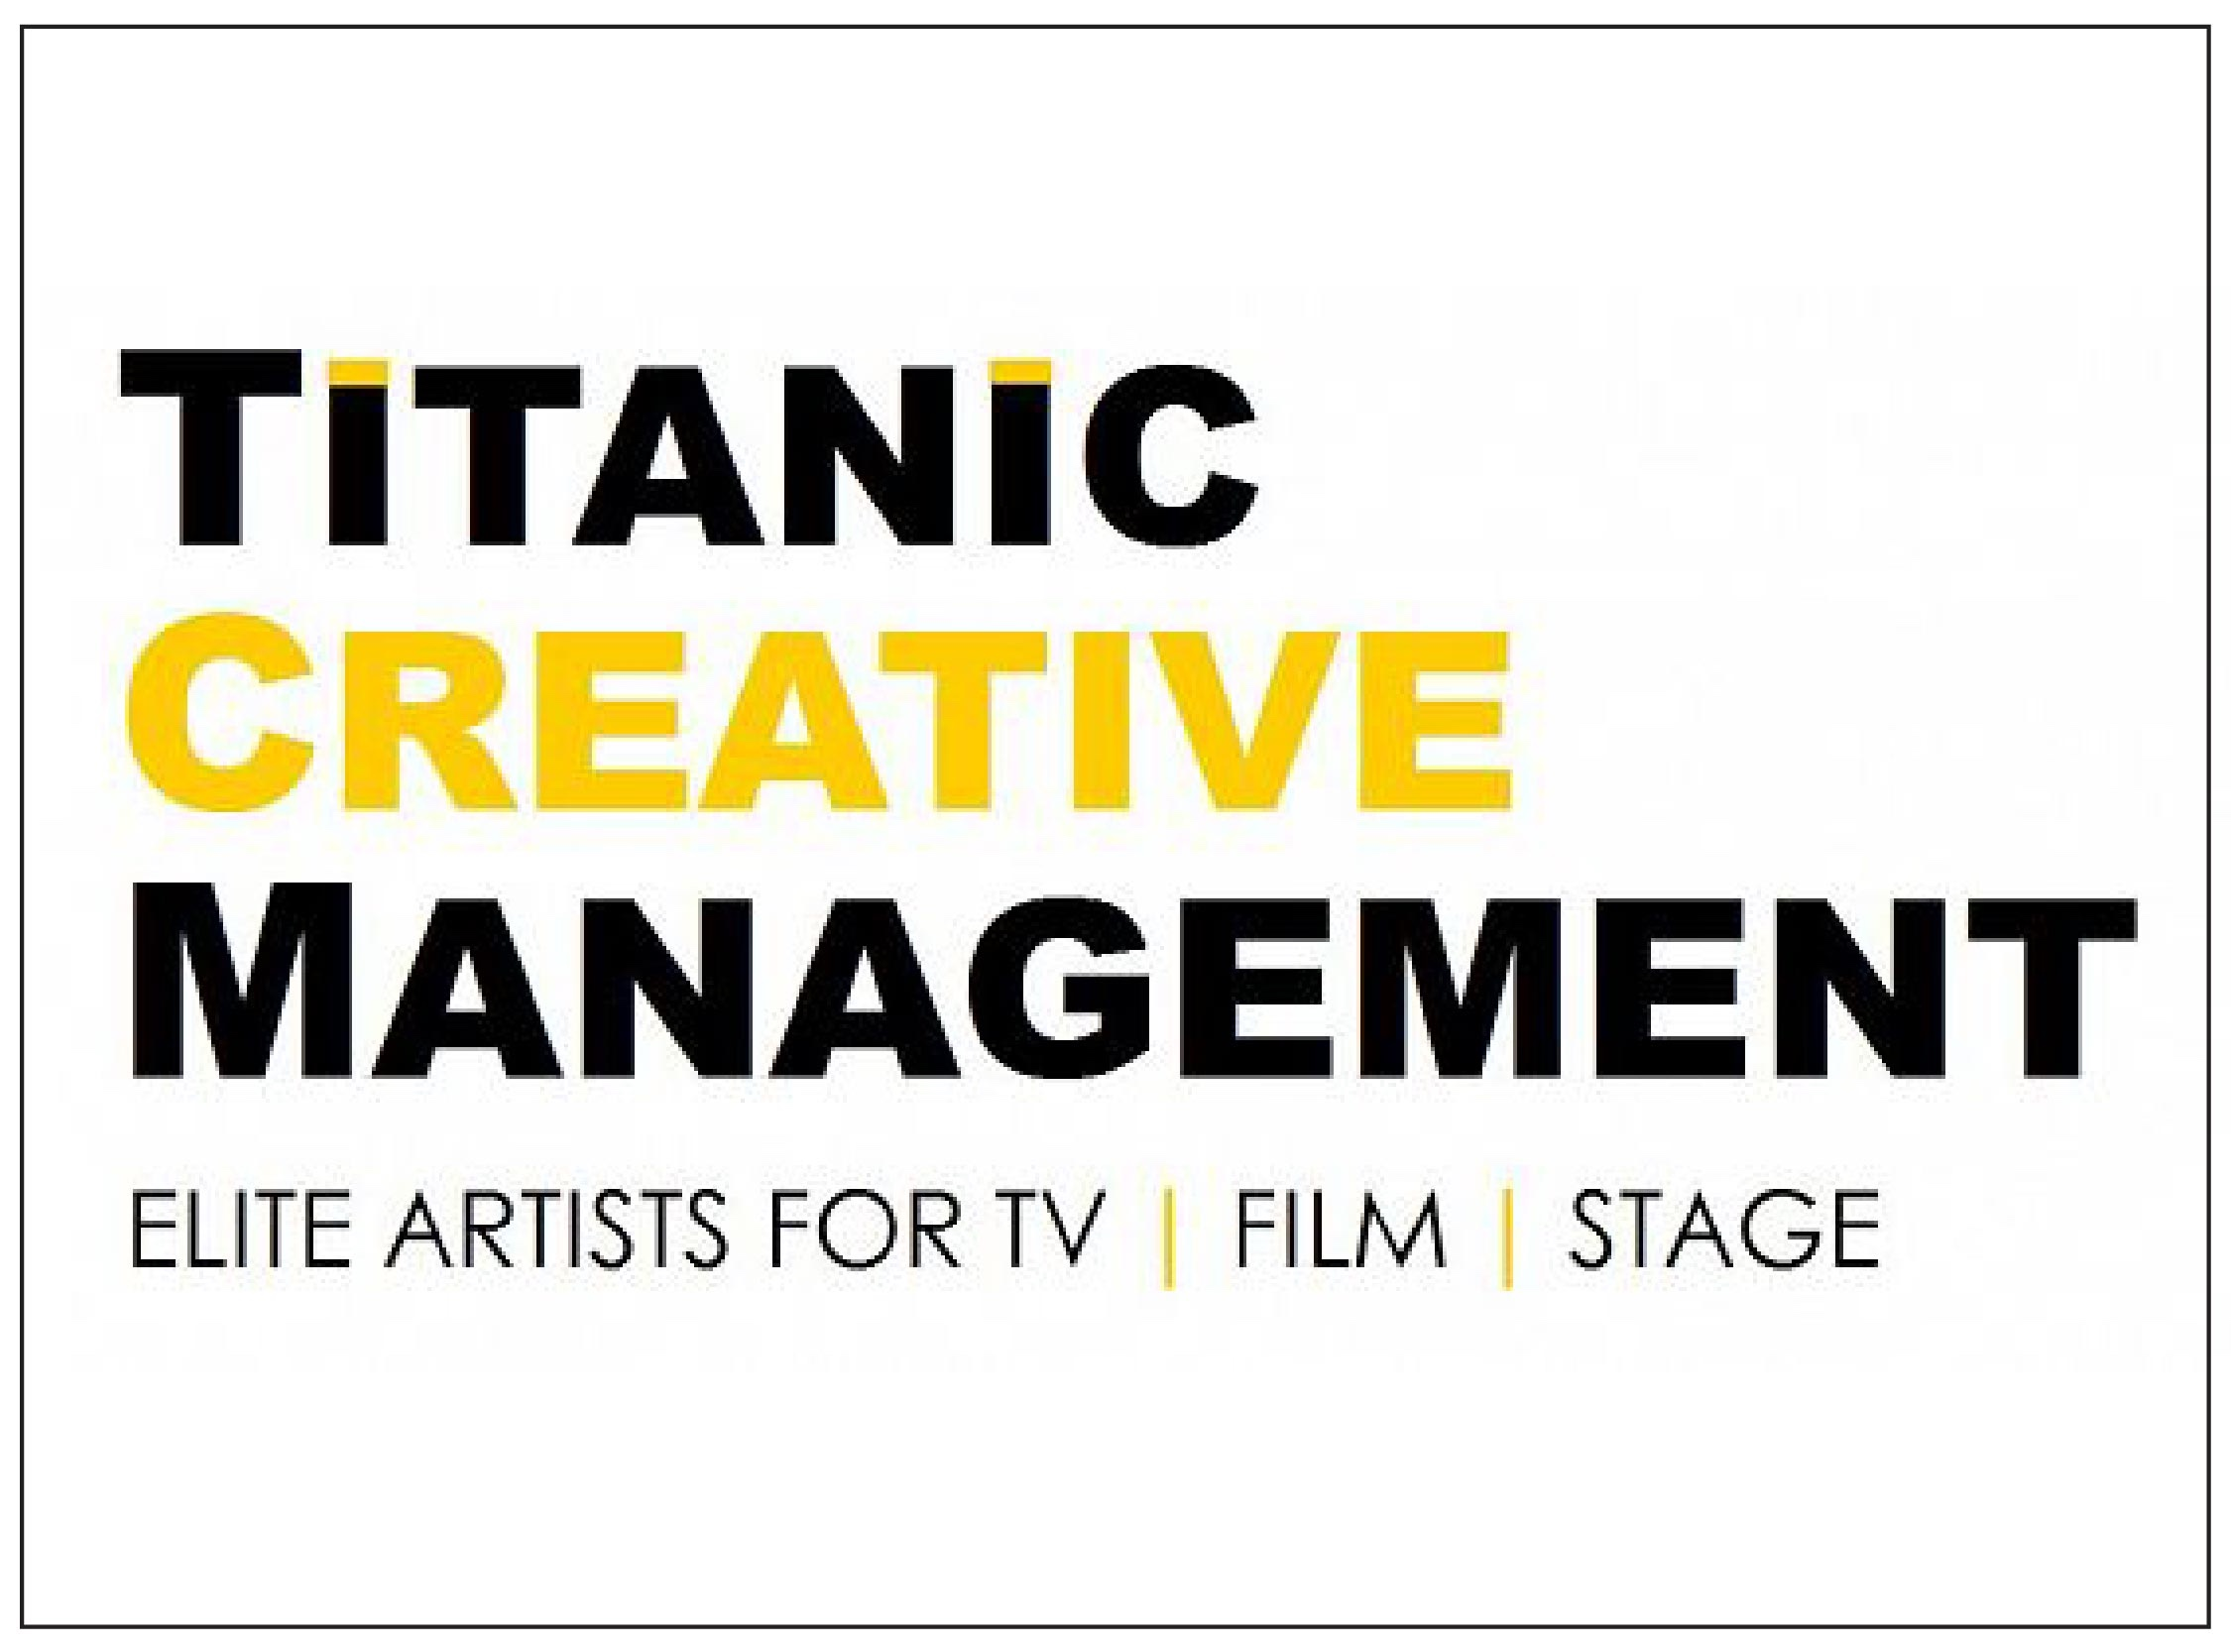 Titanic-Creative-Management-2015-Portfolio-01-1